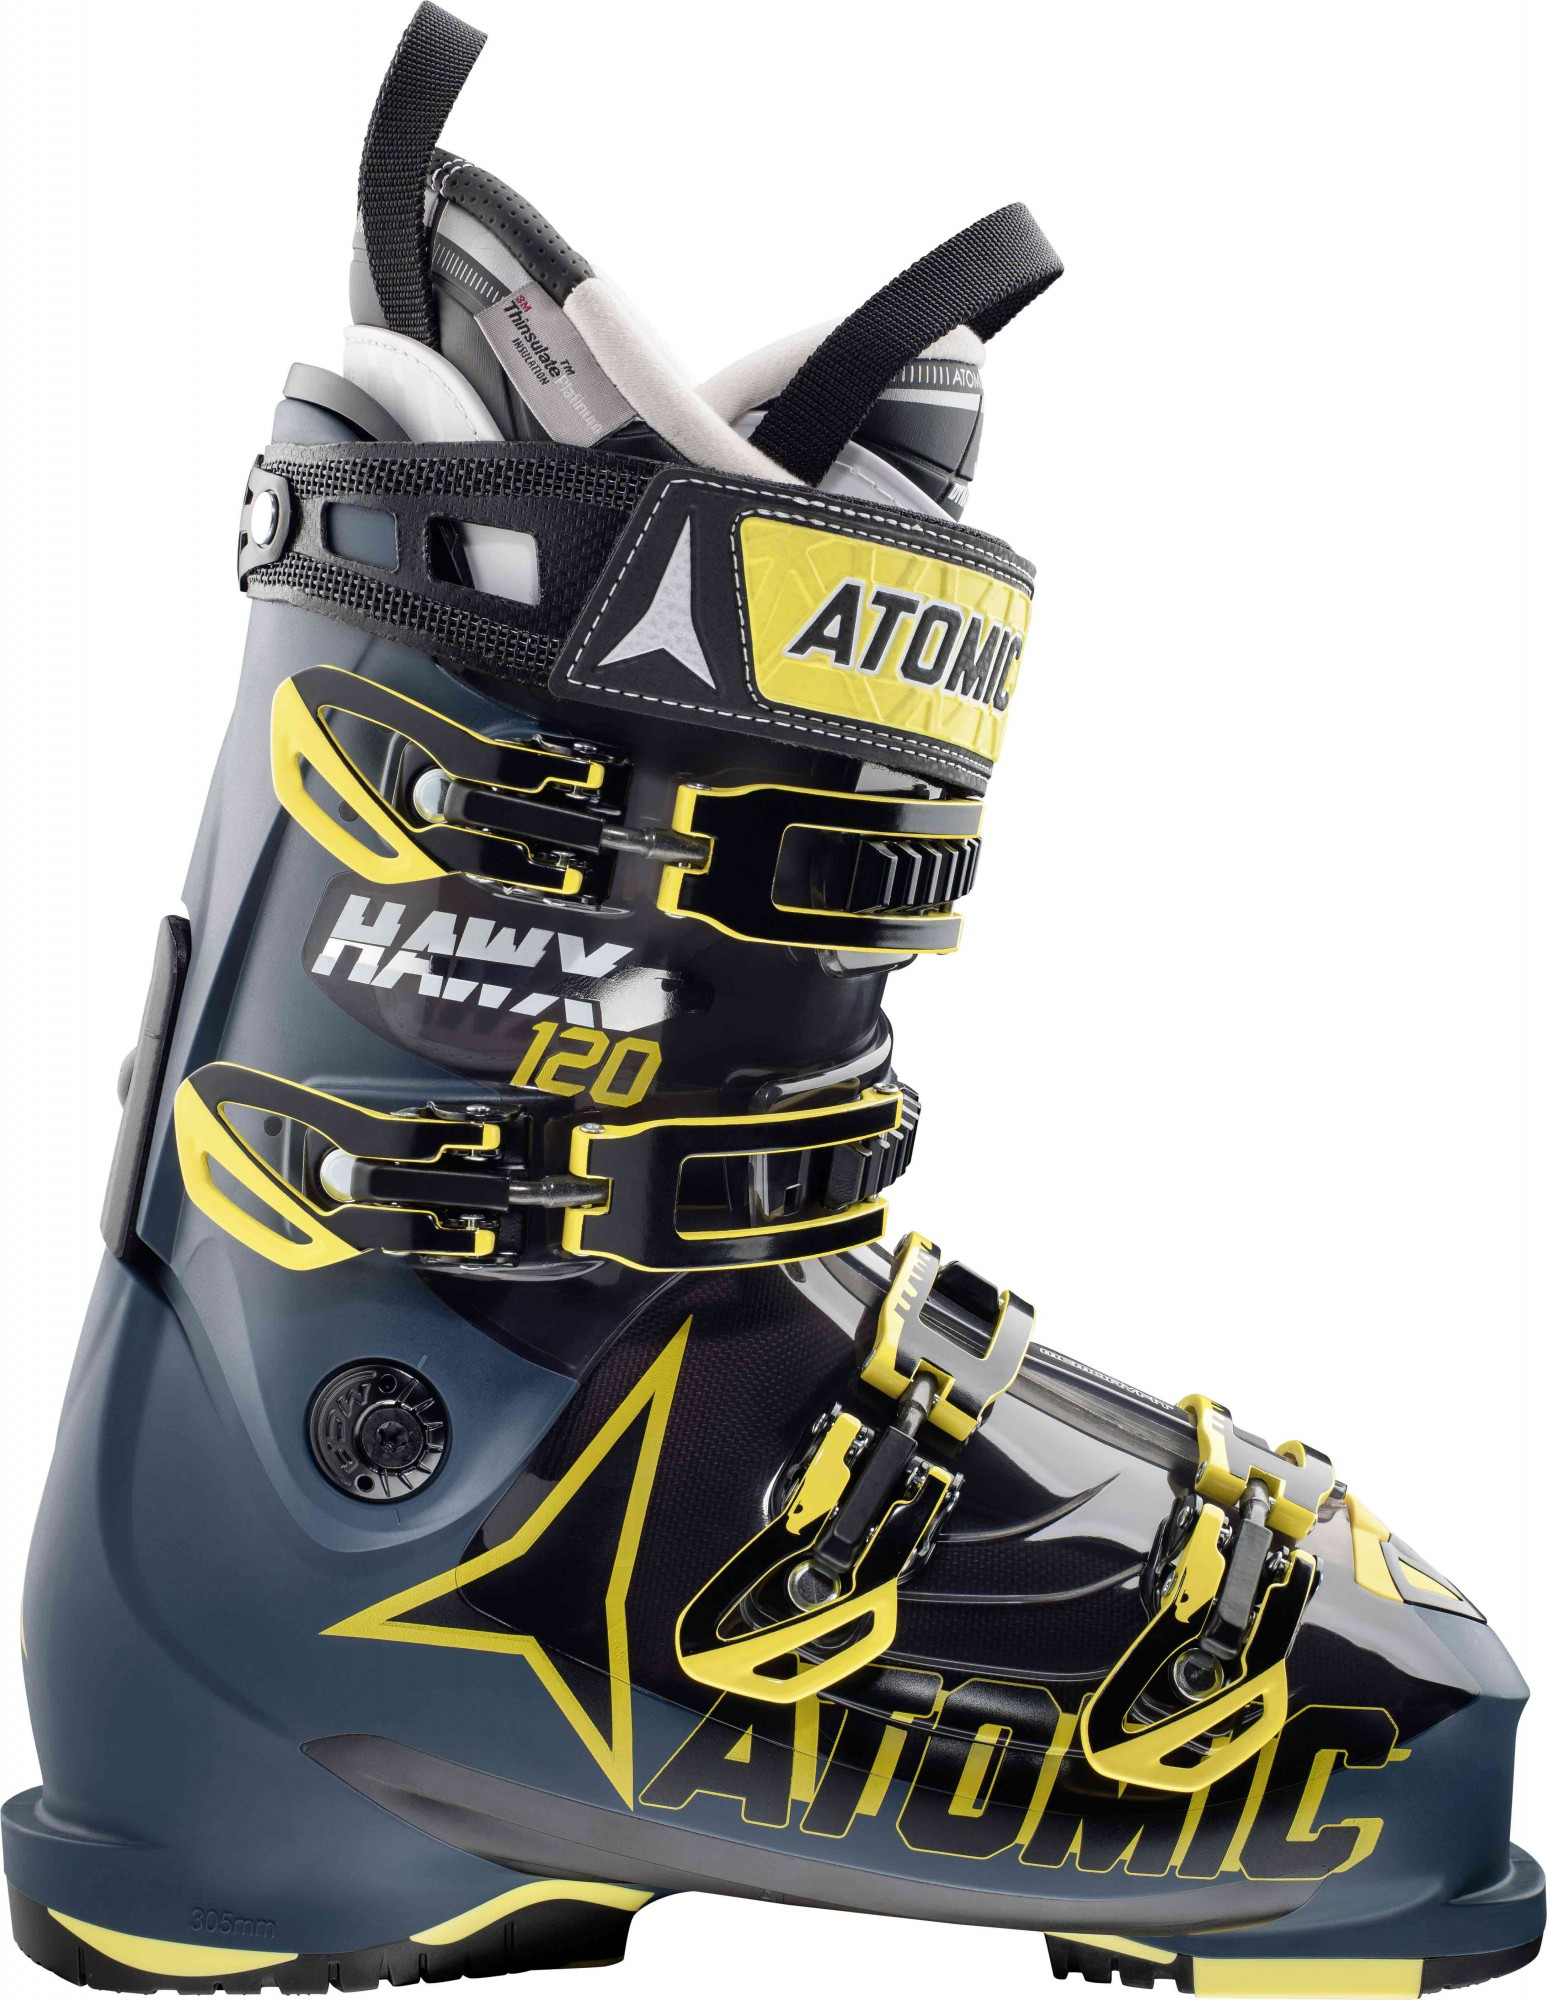 Atomic Hawx 120 - 1 Paar All Mountain Skischuhe